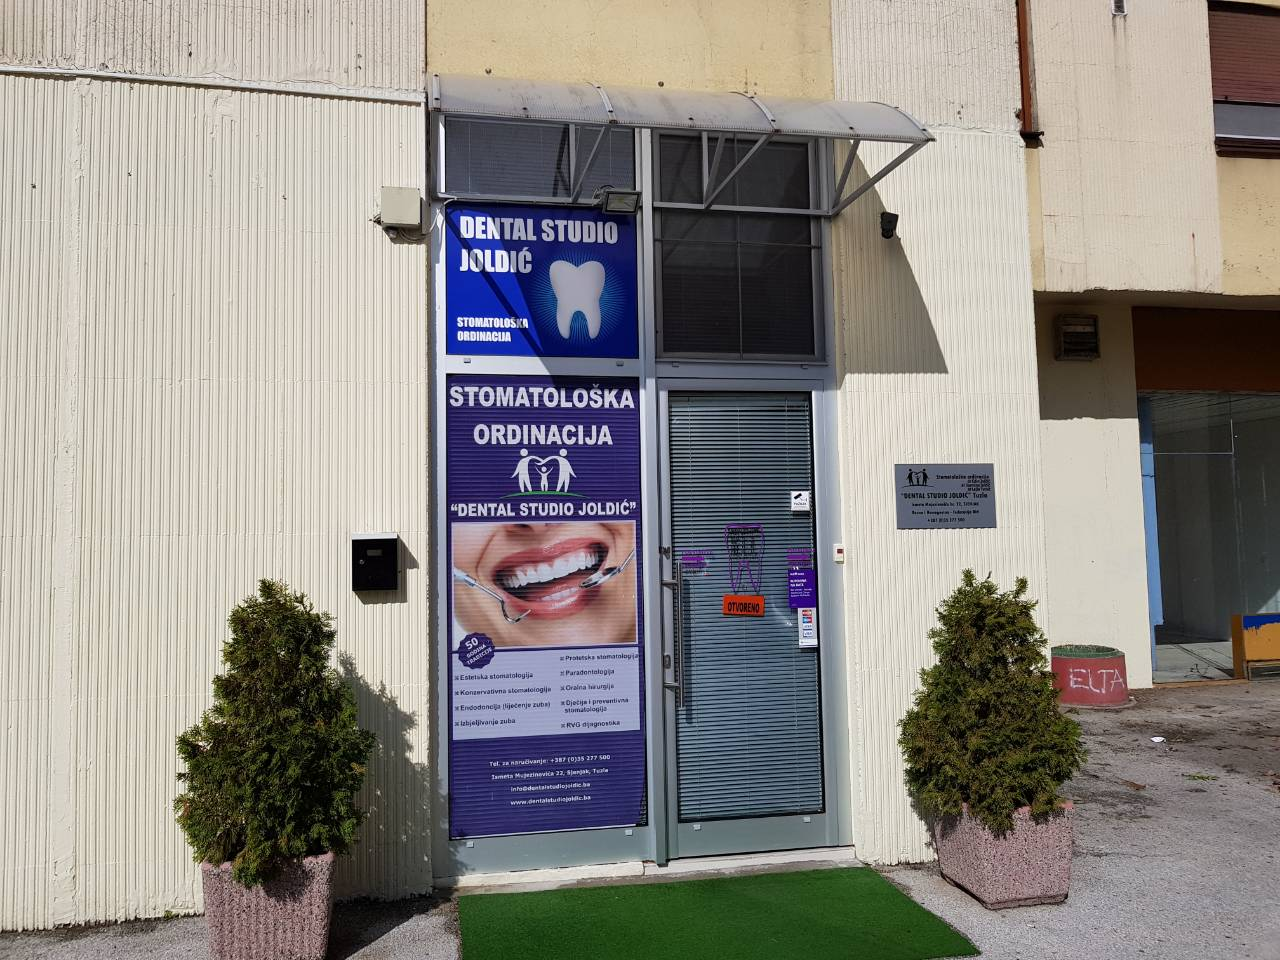 dental stidio joldic 12